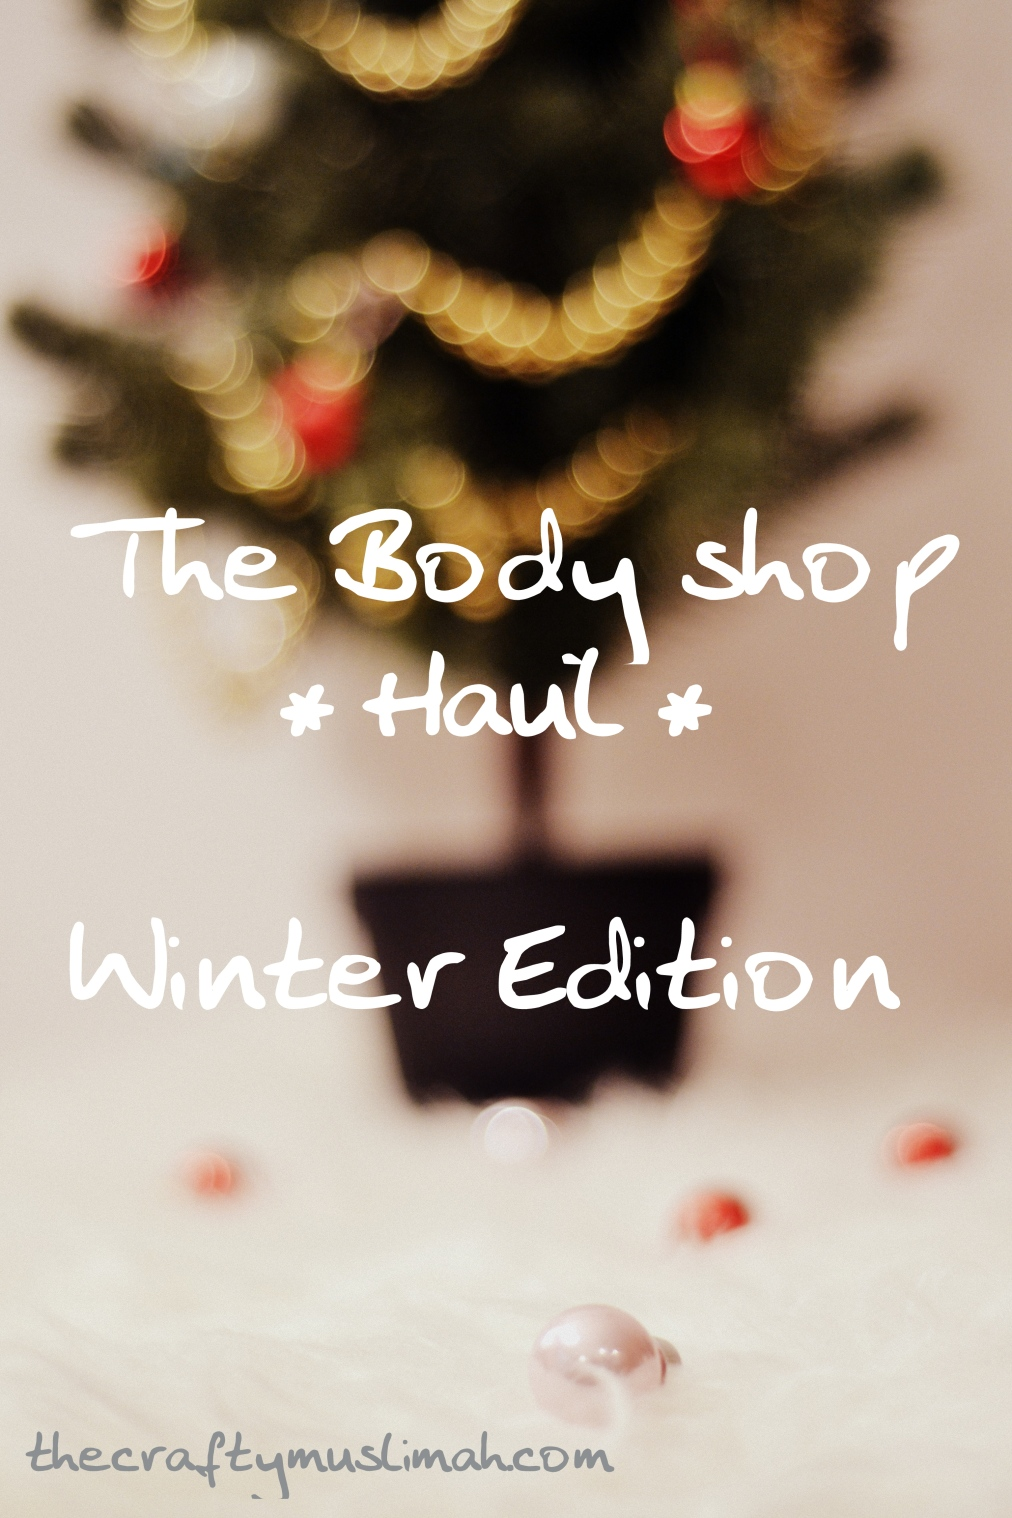 The Body Shop Haul- WinterEdition.